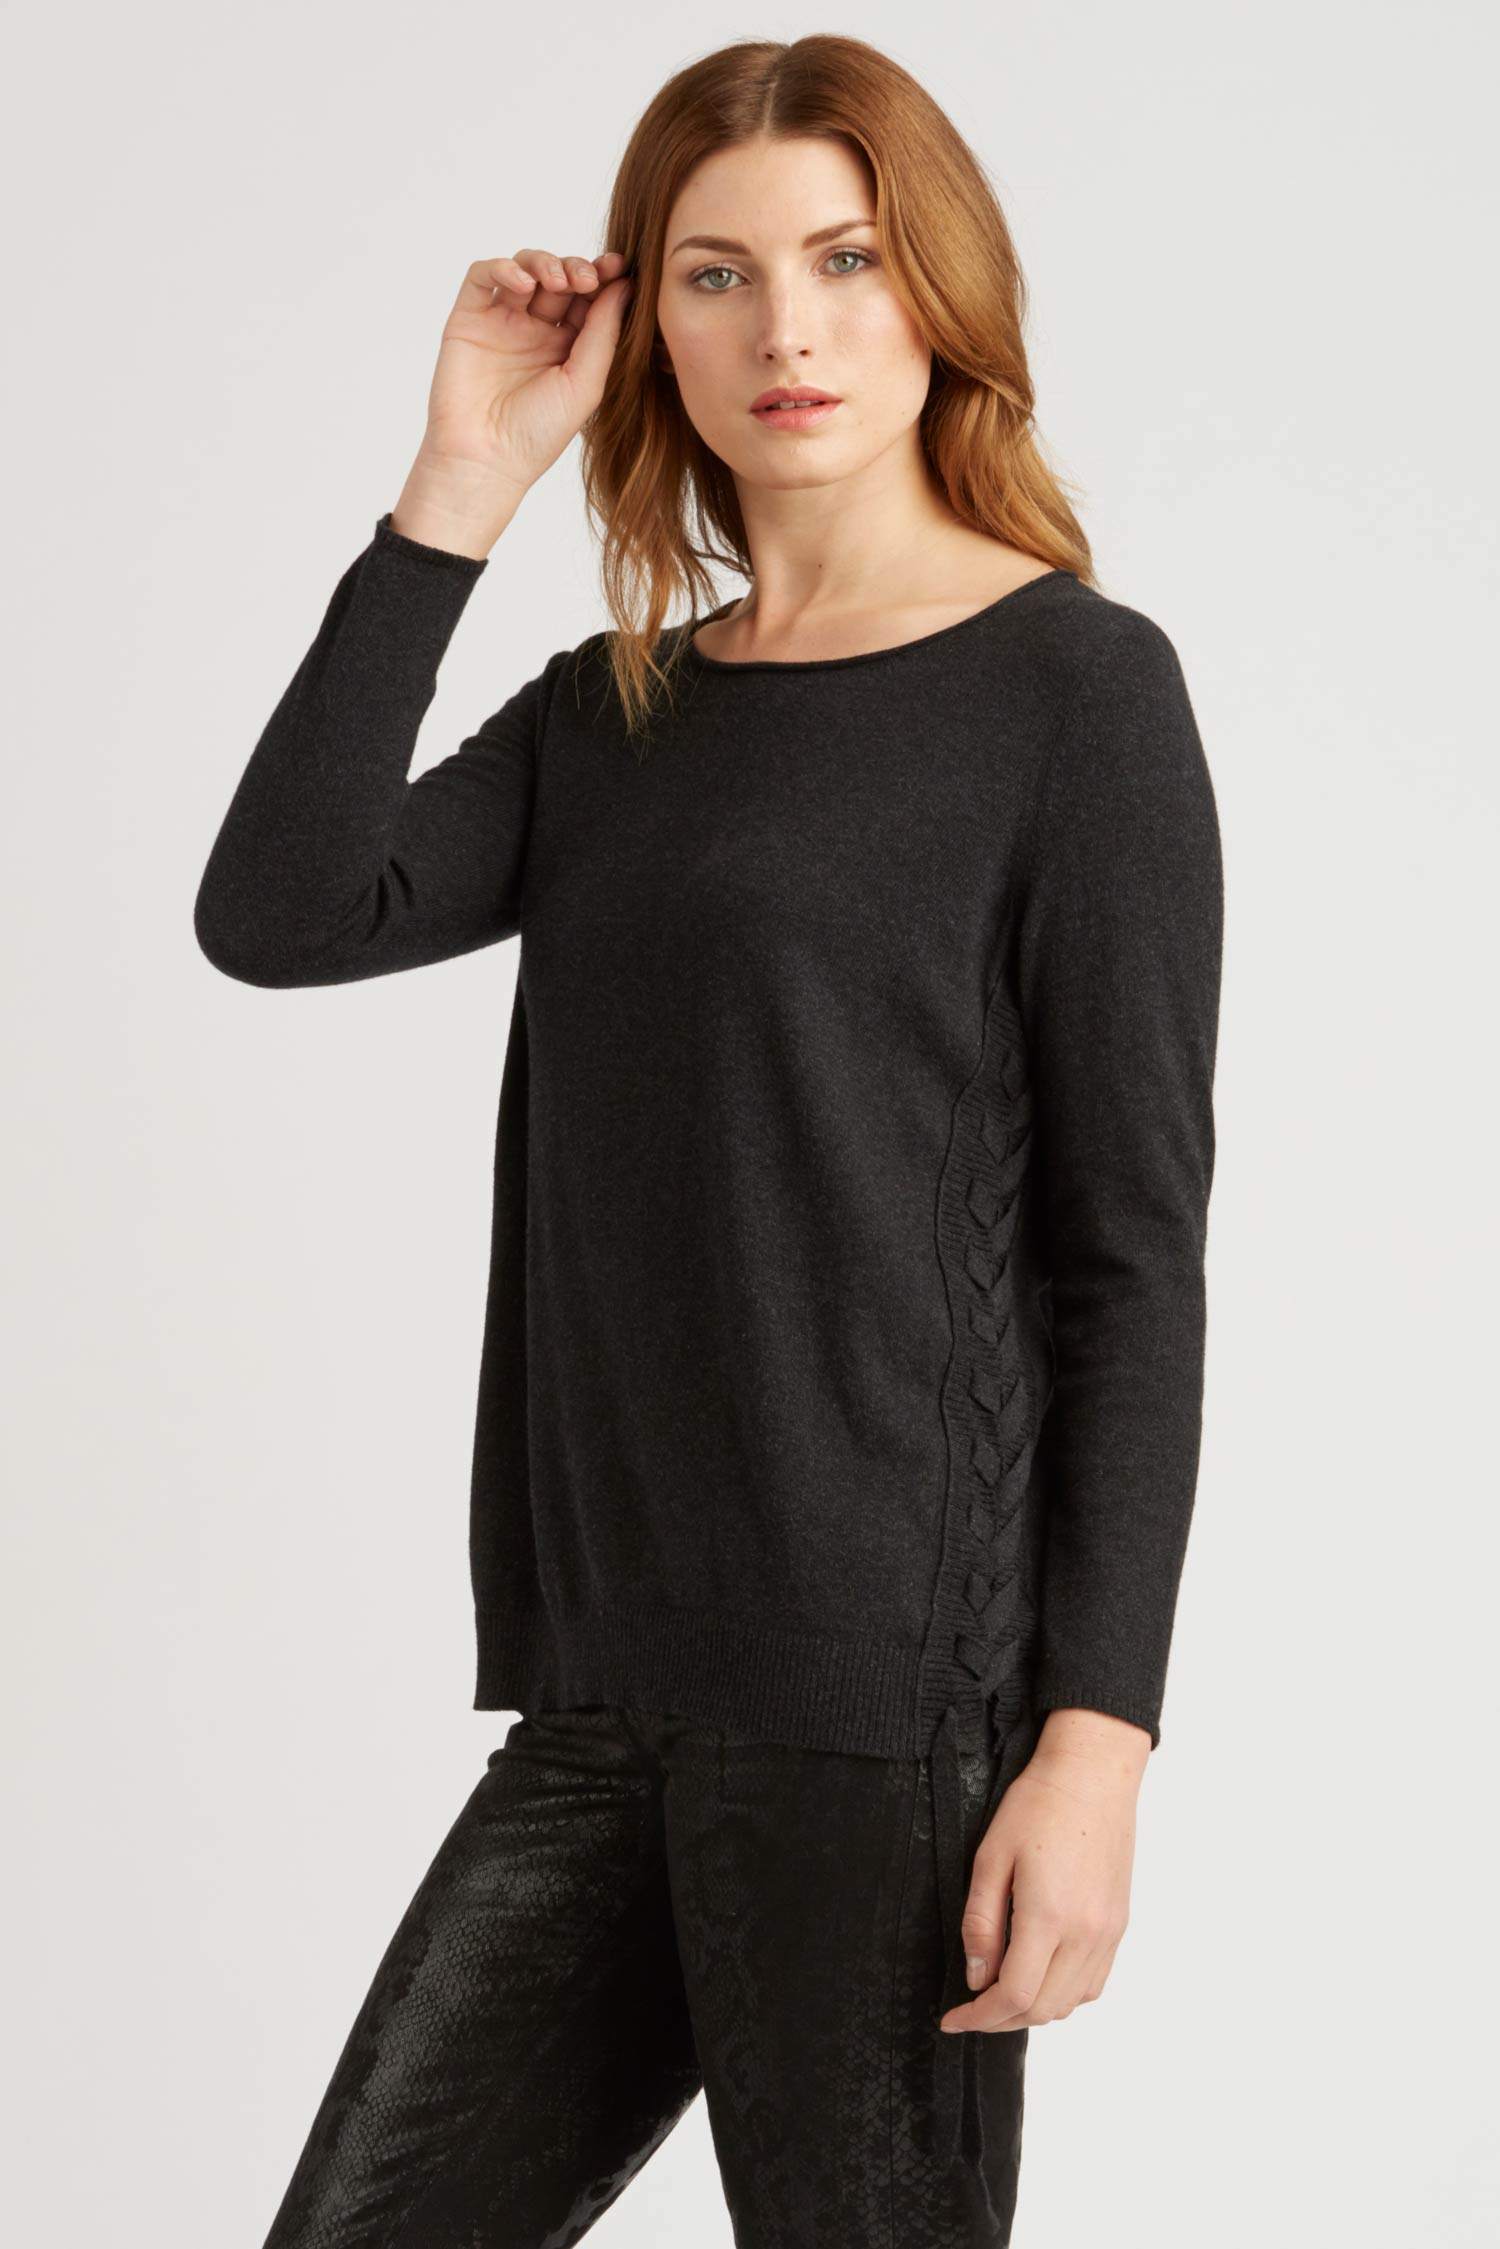 Womens Side Lace Up Pullover Sweater in Black | Sustainable Fashion